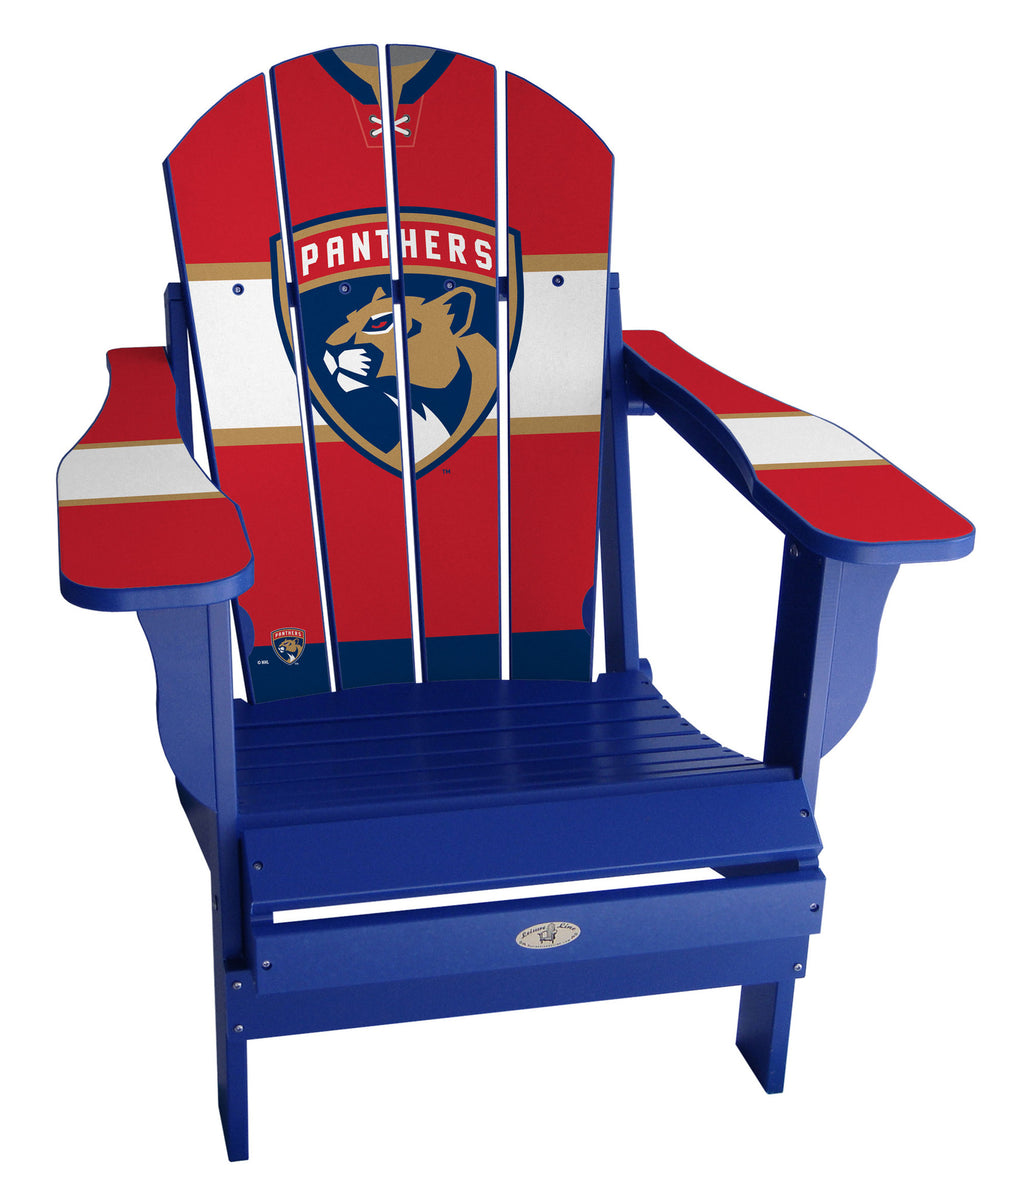 Florida Panthers® NHLPA Player Jersey Chair